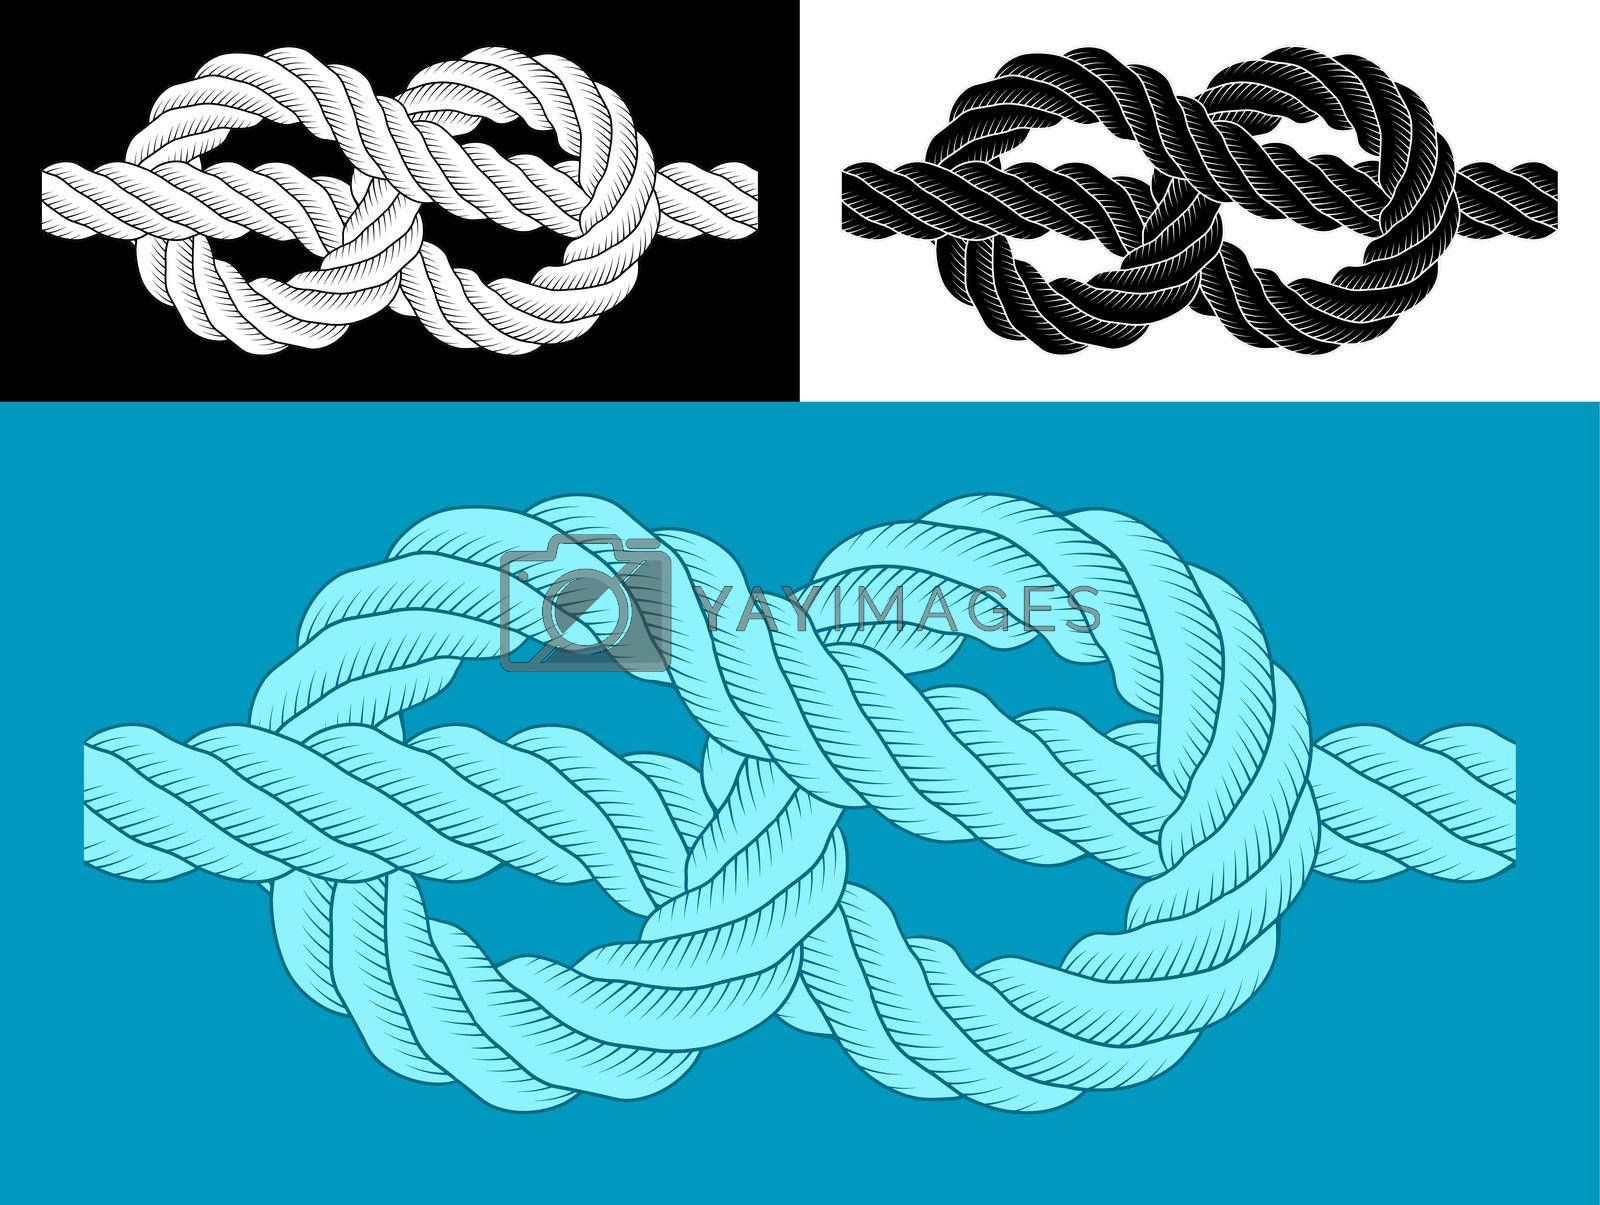 rope sea knot emblem. Rope for fastening on ships. Element for design and decoration. Vector